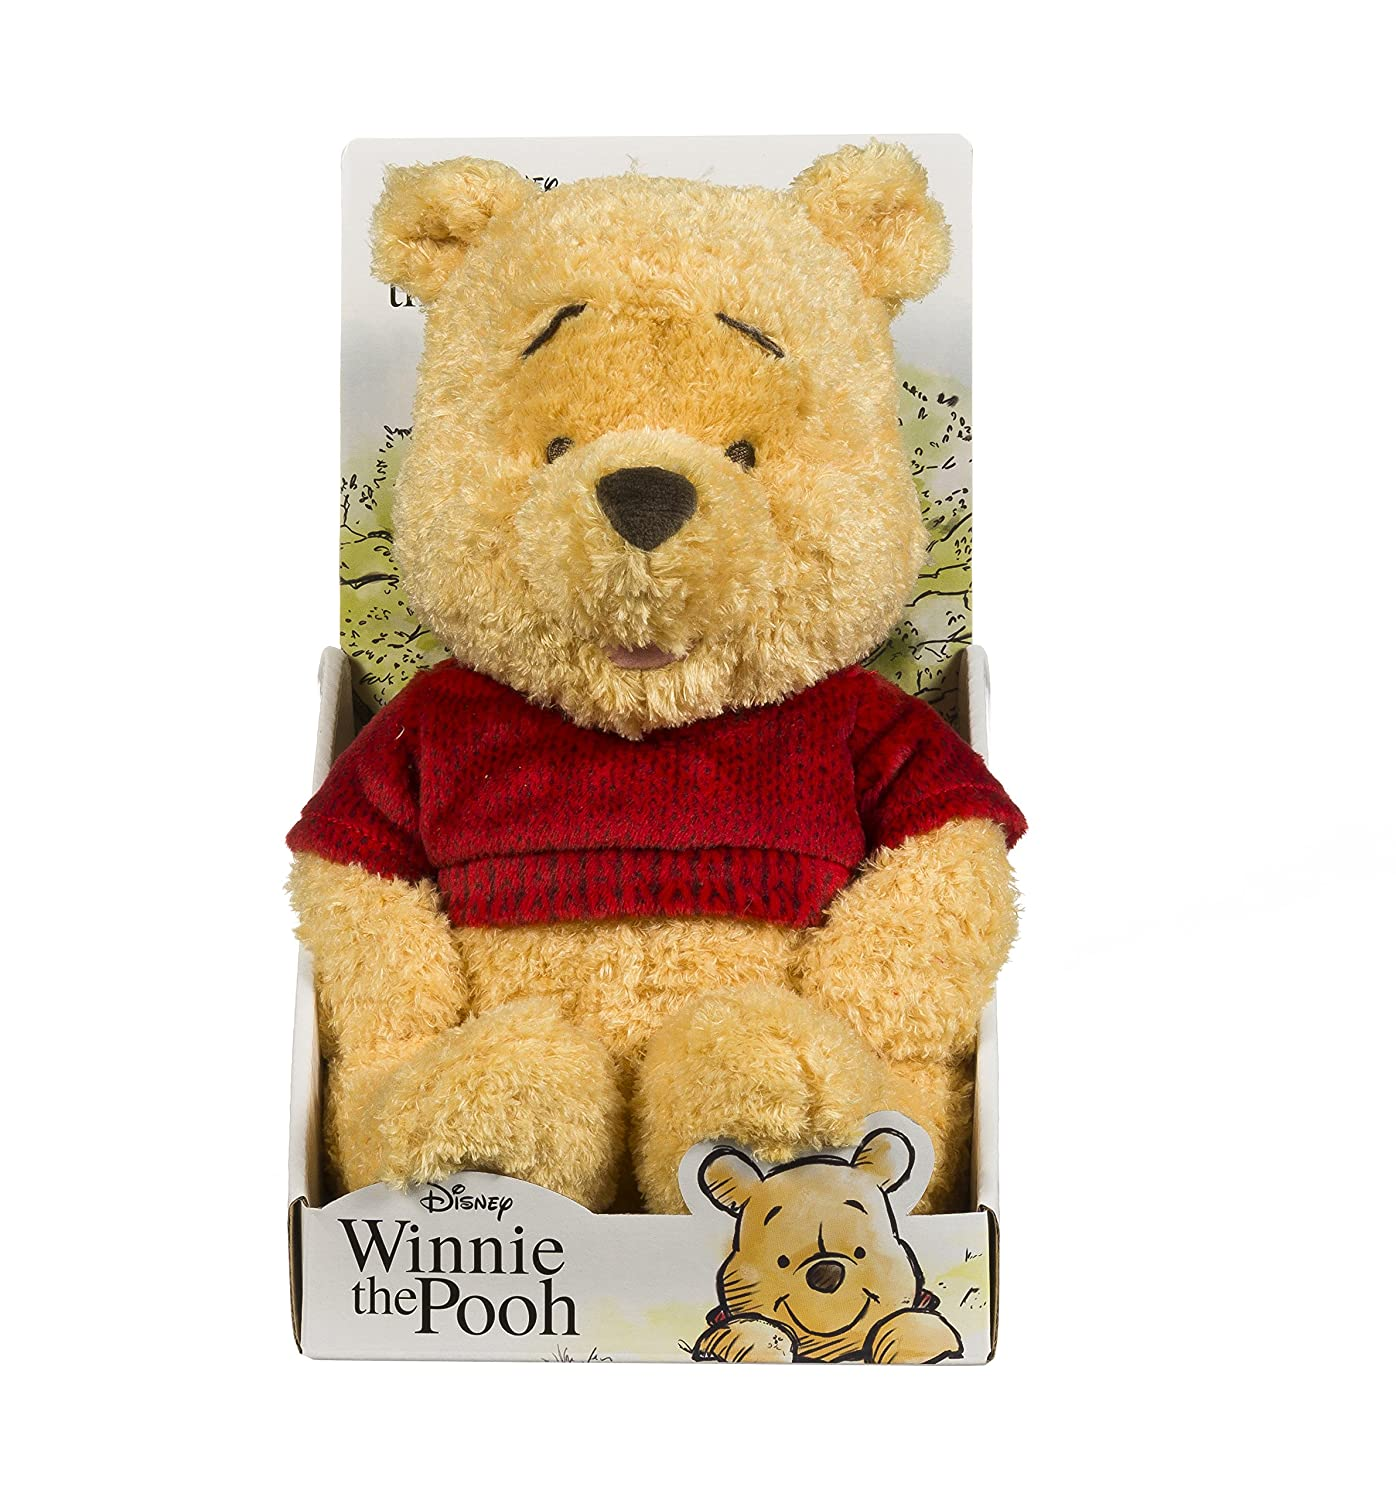 Posh Paws 37125 - Peluche de Winnie The Pooh, 25 cm, Color Rojo: Amazon.es: Juguetes y juegos